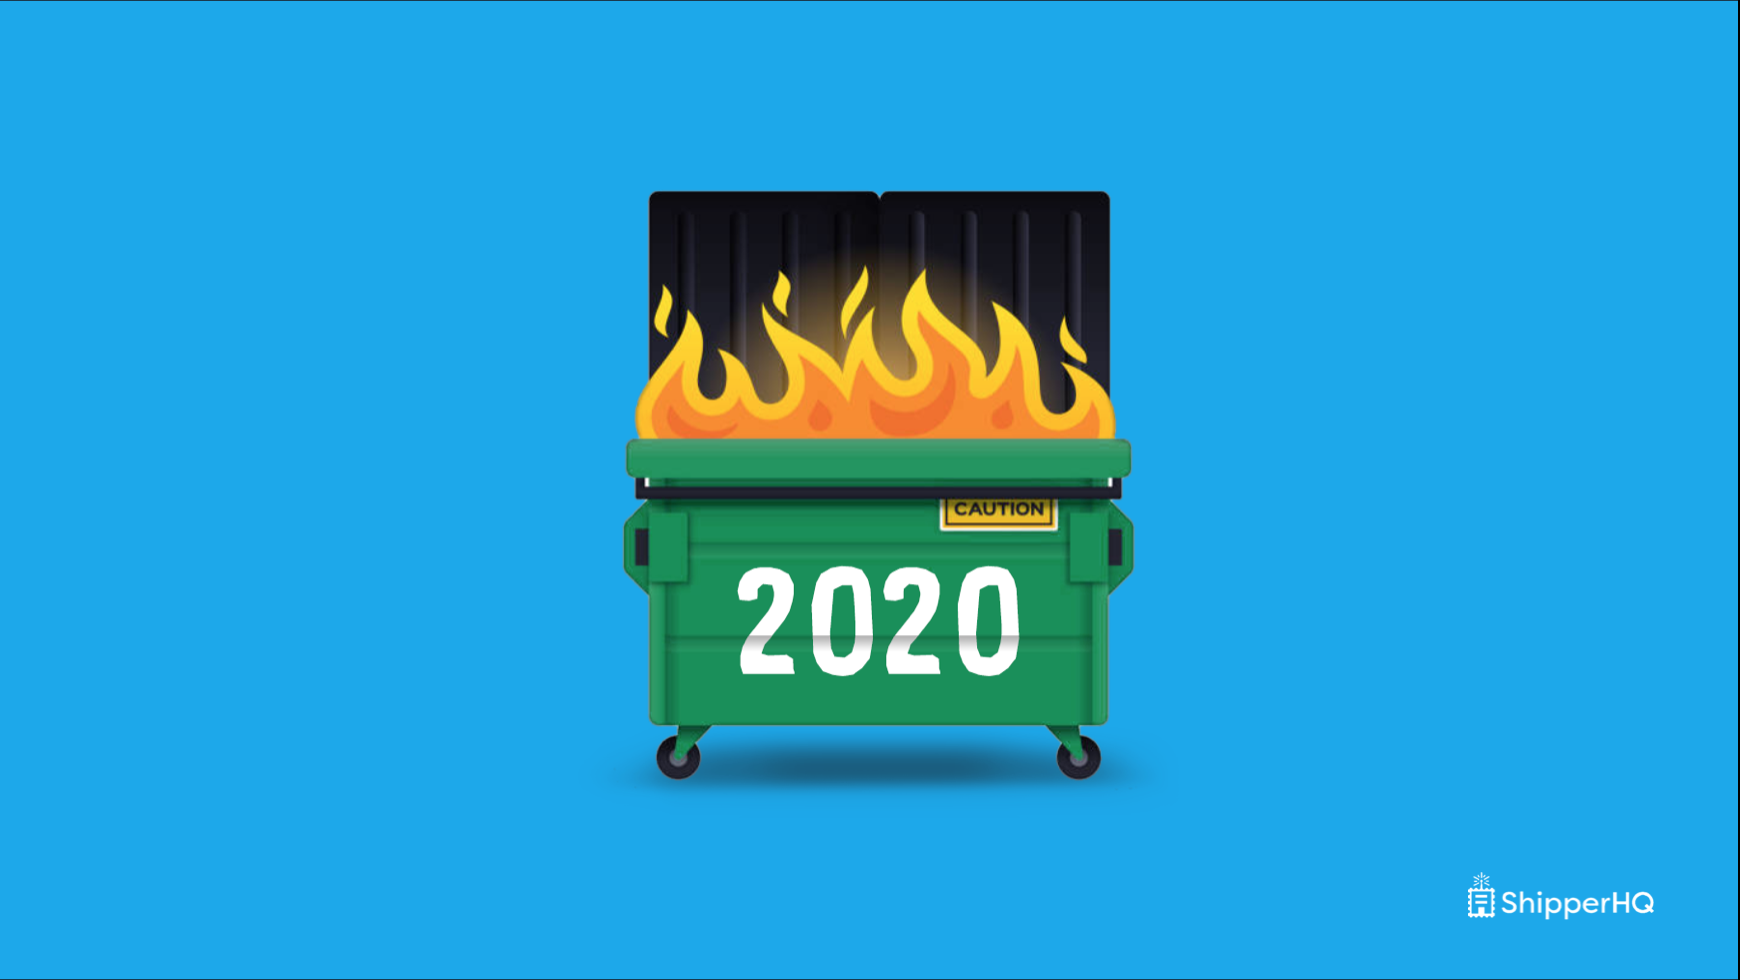 2020 Ecommerce Expectations